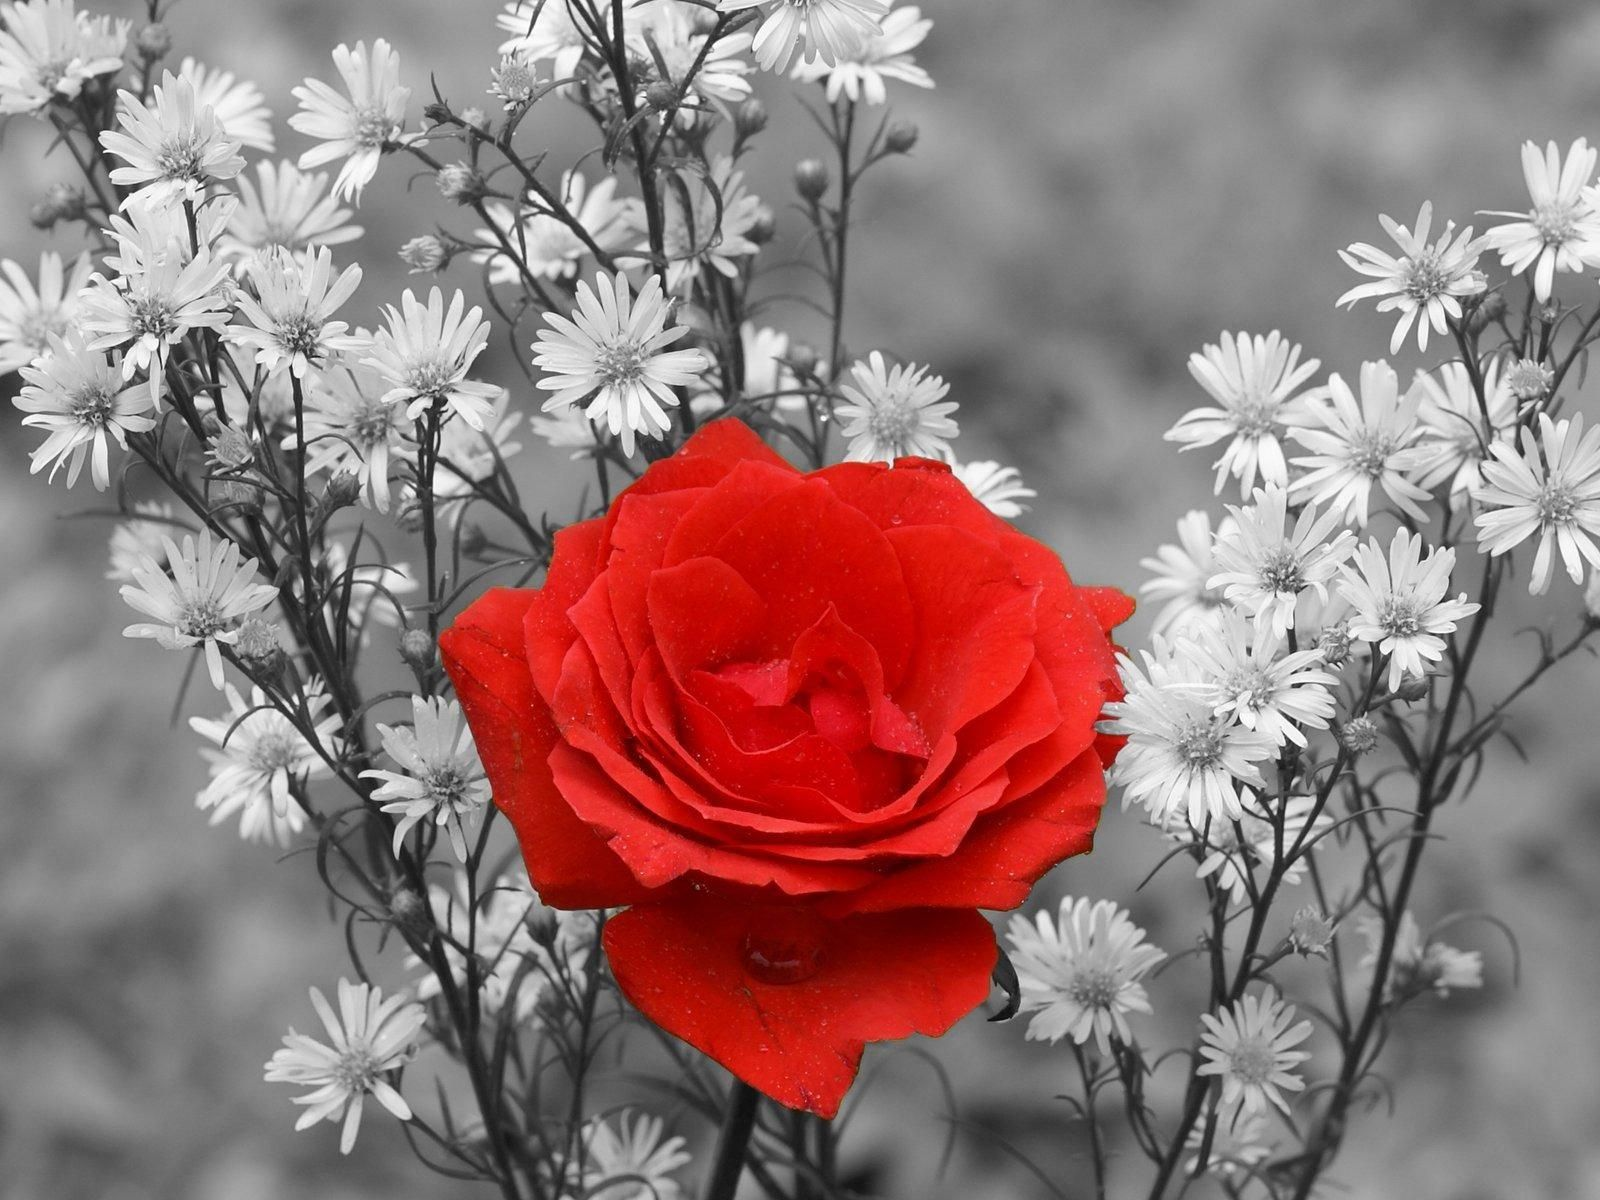 Red Rose Flower Black And White   High Quality Wallpaper